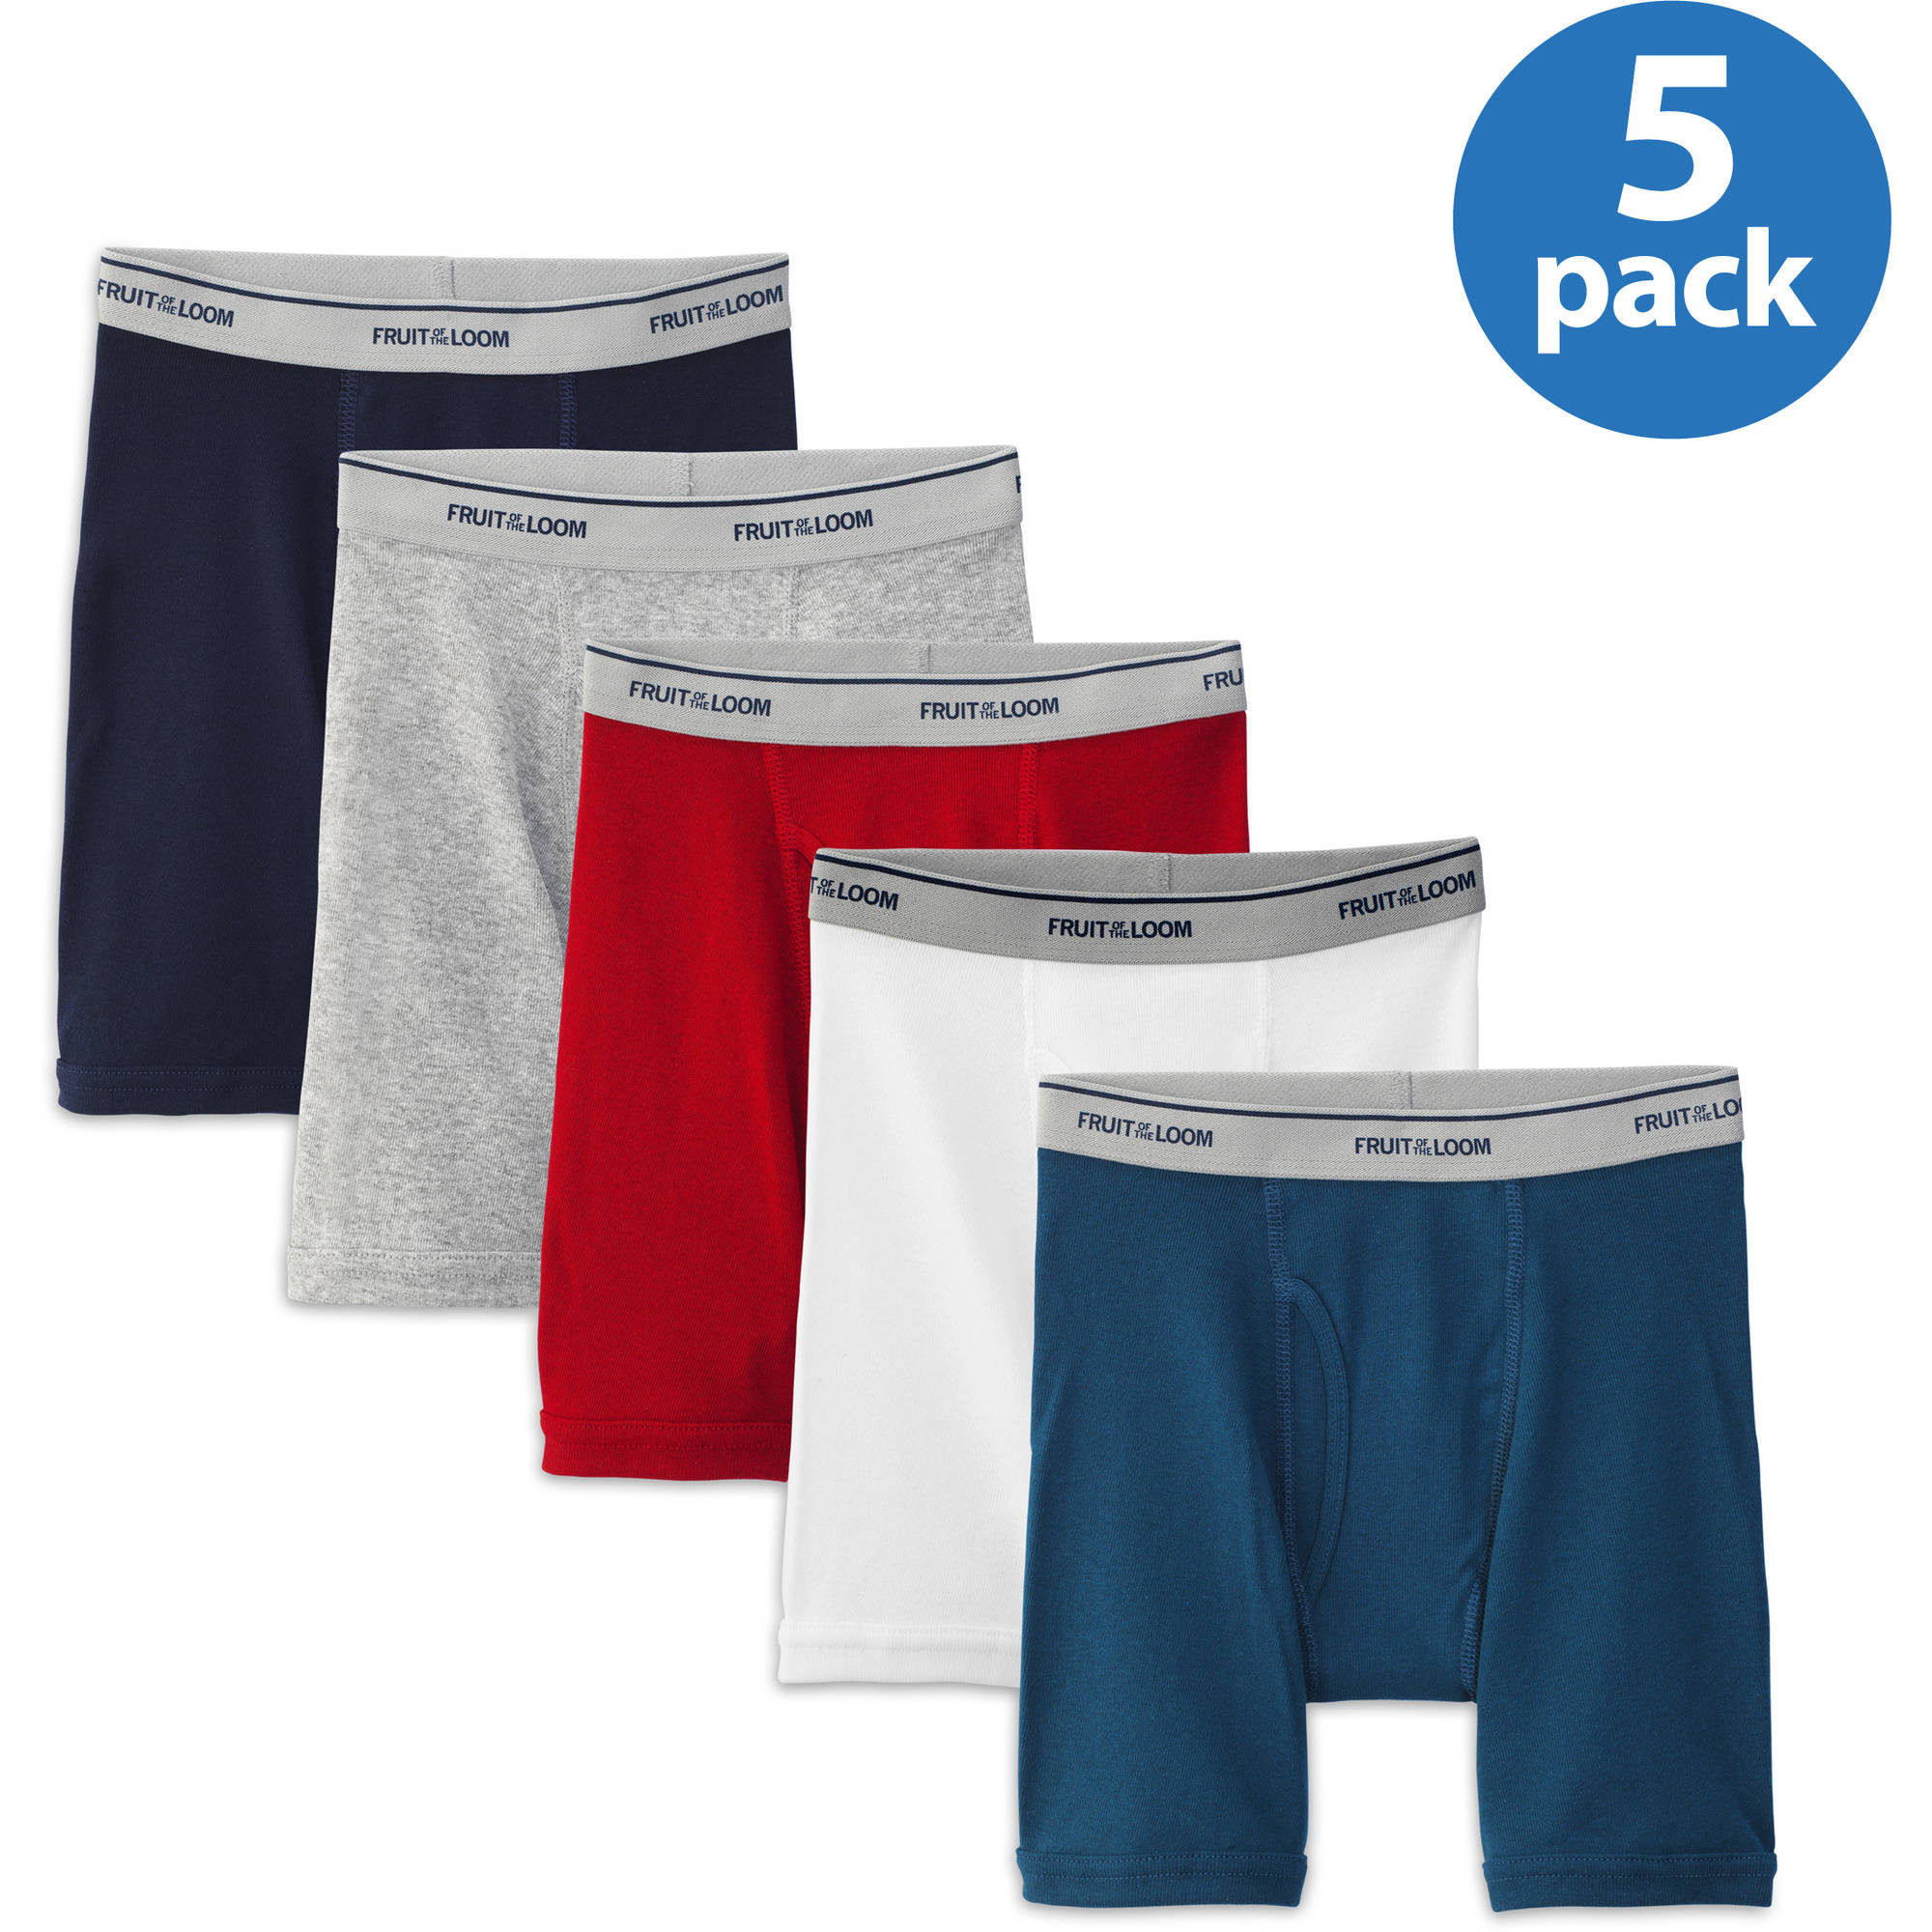 Fruit of the Loom Boys' Assorted Color Boxer Briefs, 5 Pack